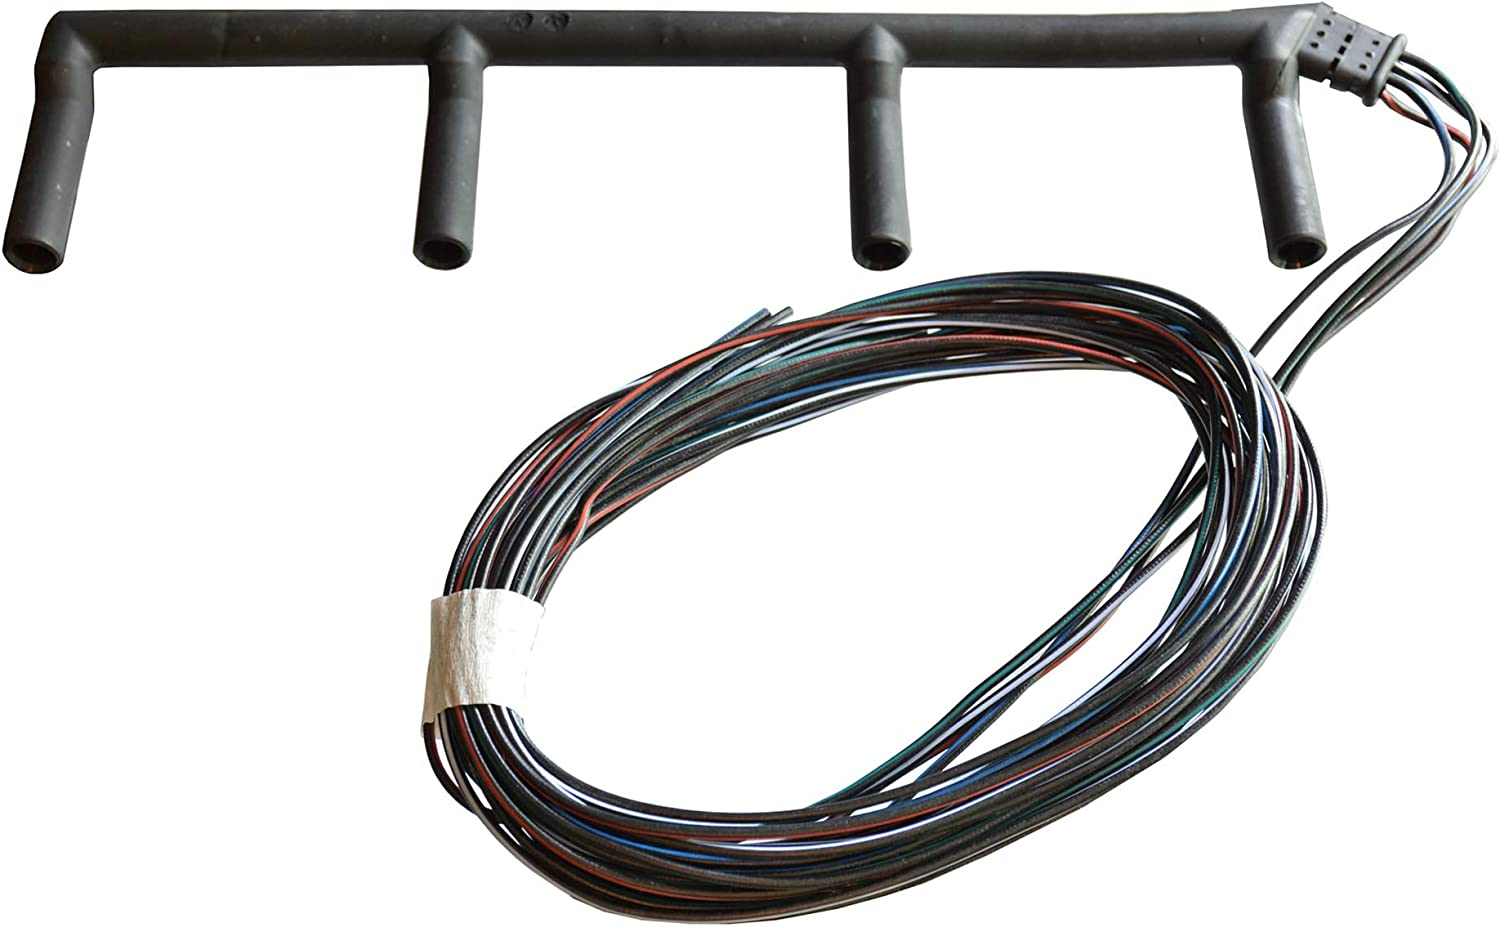 Amazon.com: Michigan Motorsports Diesel Glow Plug Wiring Harness Fitment  for 2004 to 2006 VW Beetle Jetta 1.9 038971782C RK3028: AutomotiveAmazon.com